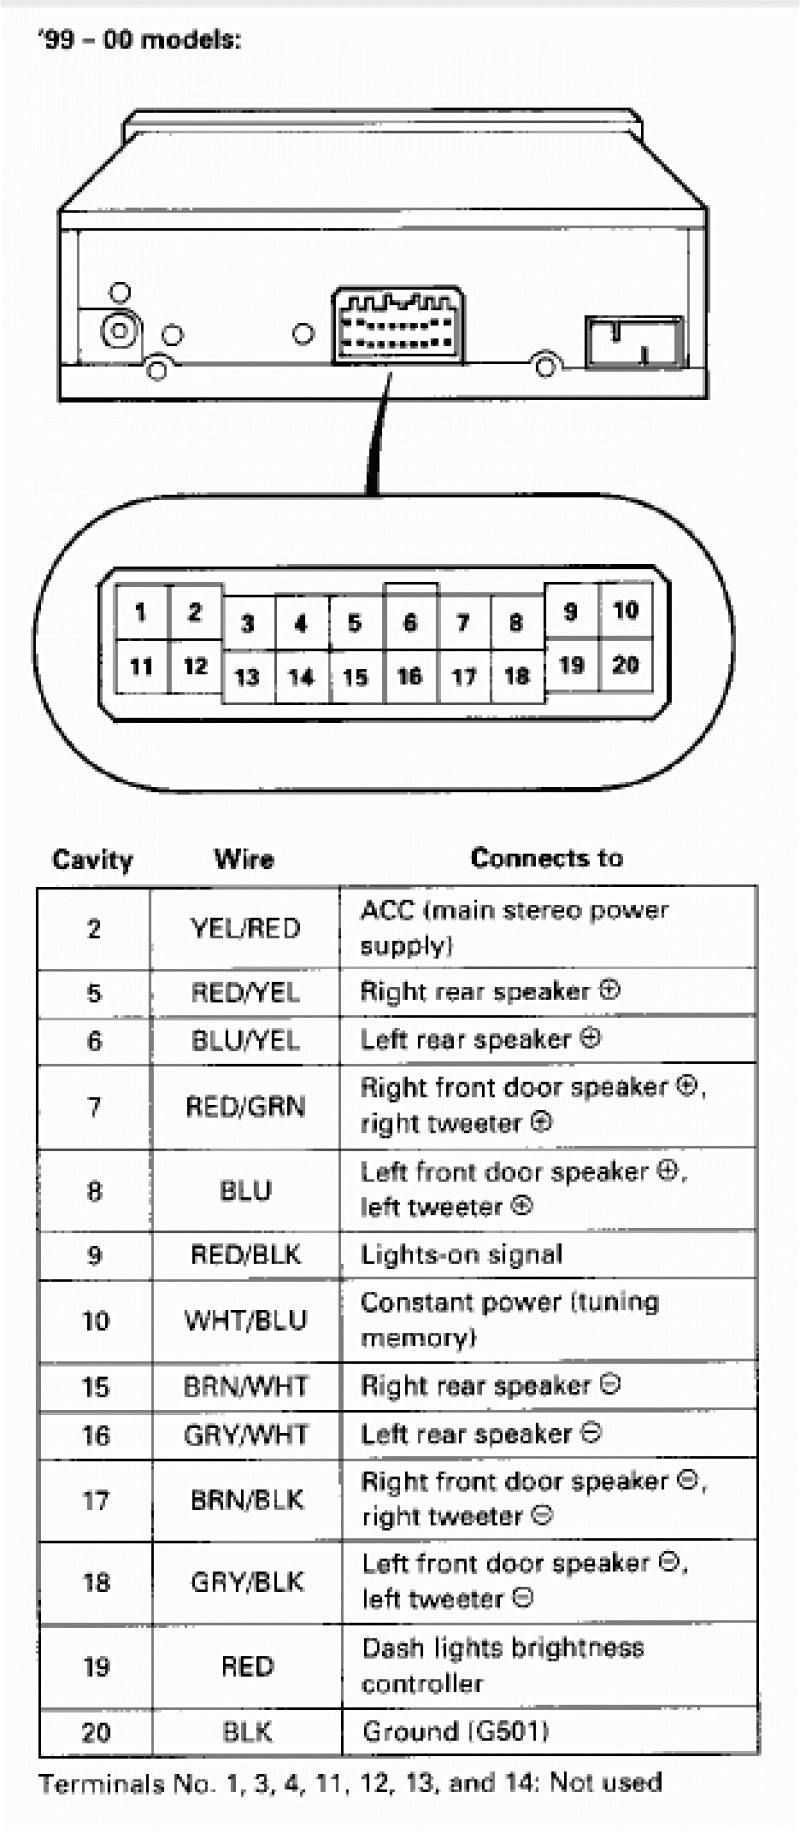 [DIAGRAM_1CA]  1995-honda-civic-radio-wiring-diagram-sevimliler-and.jpg (800×1833) | Civic  car, Honda civic car, Honda civic | Honda Car Radio Wiring Diagram Free Picture |  | Pinterest